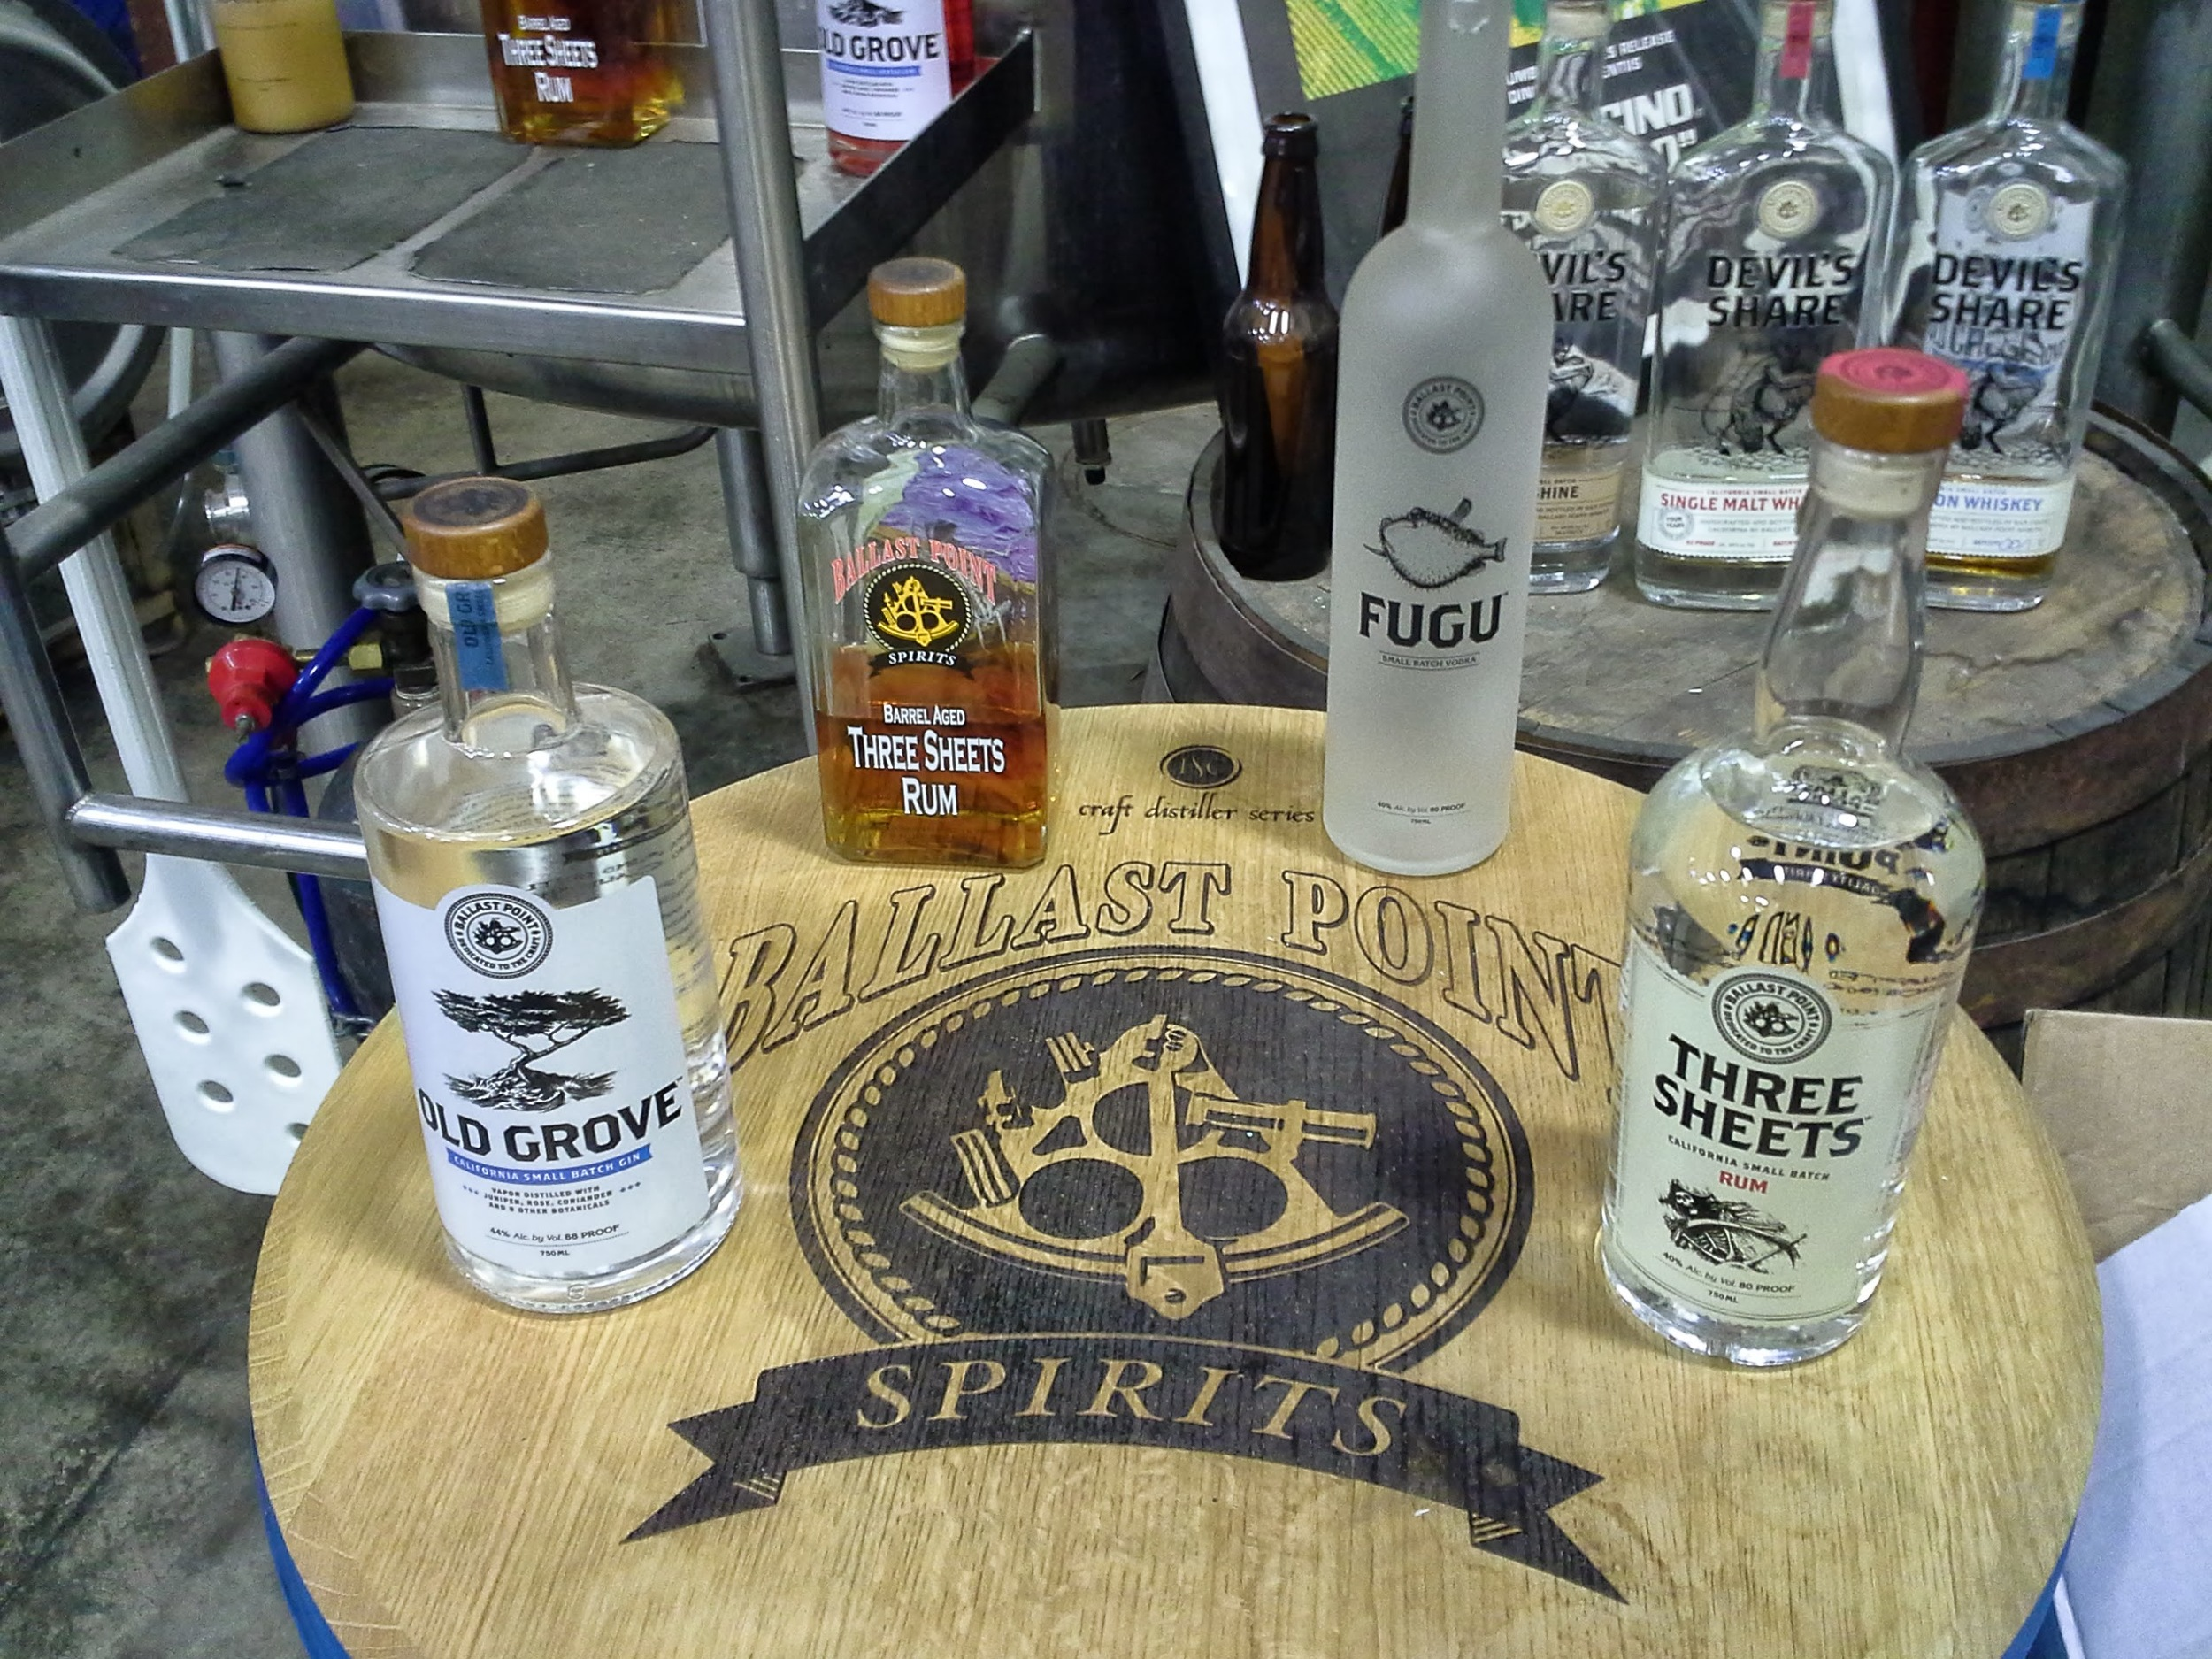 Lineup from Ballast Point Spirits